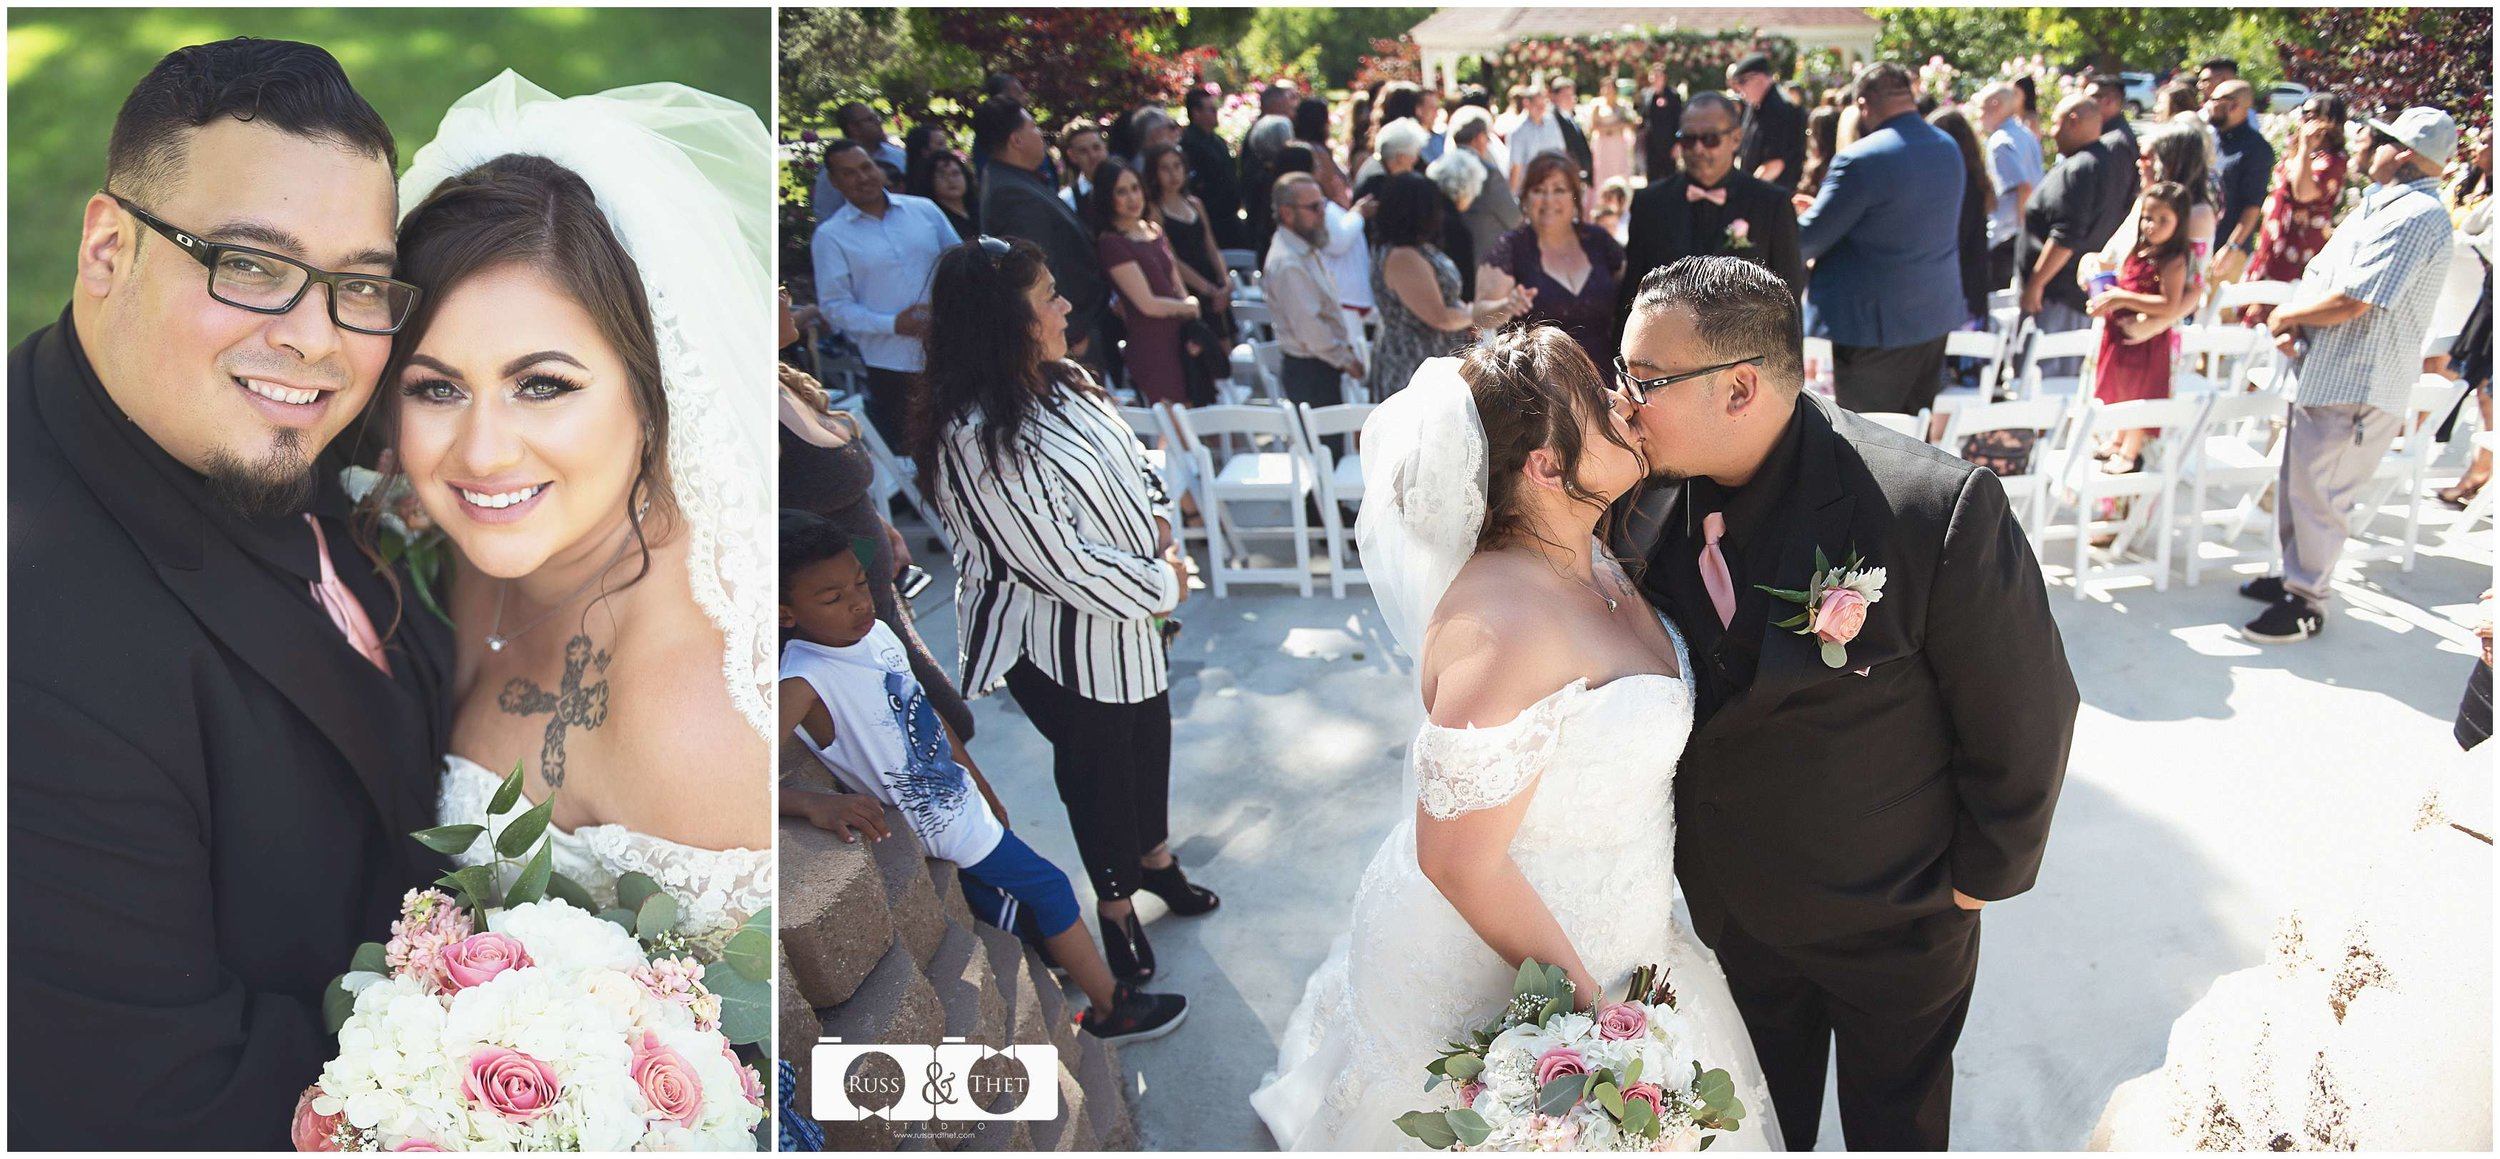 Rowland-Heights-Wedding.jpg